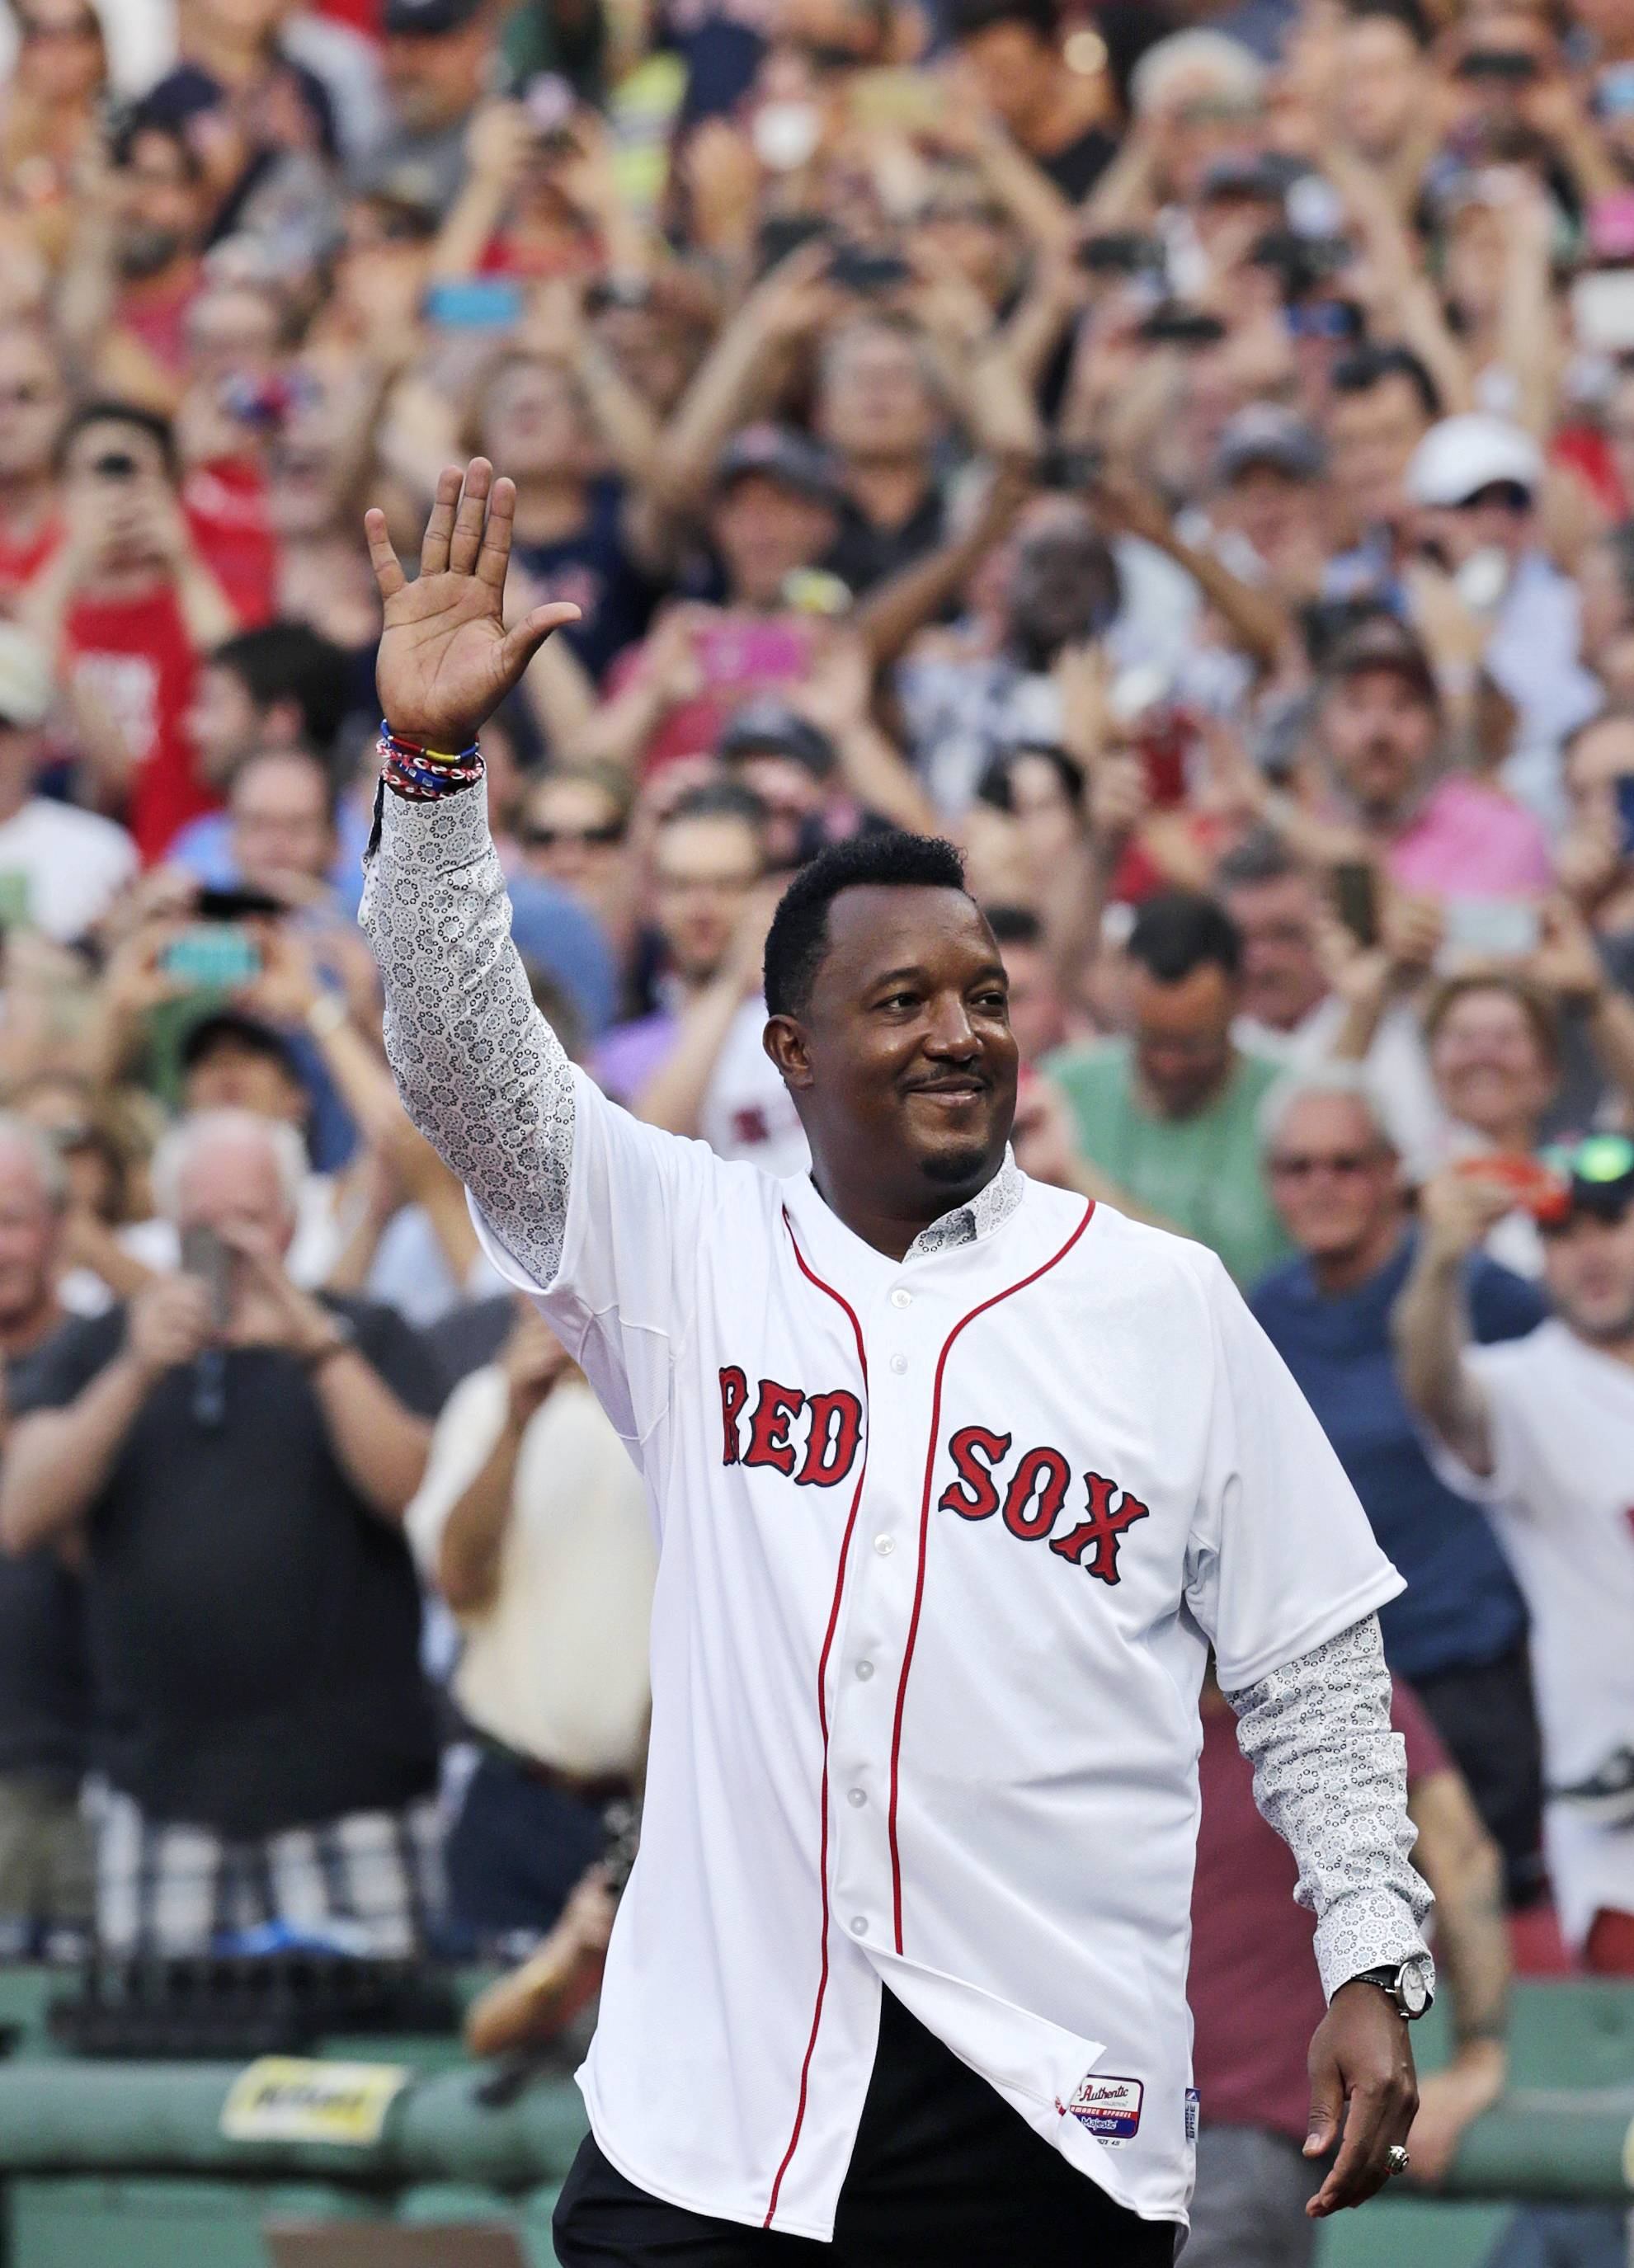 Baseball Hall of Fame member and former Boston Red Sox player Pedro Martinez acknowledges fans during a ceremony where his jersey was retired prior to a baseball game against the Chicago White Sox at Fenway Park in Boston, Tuesday, July 28, 2015.